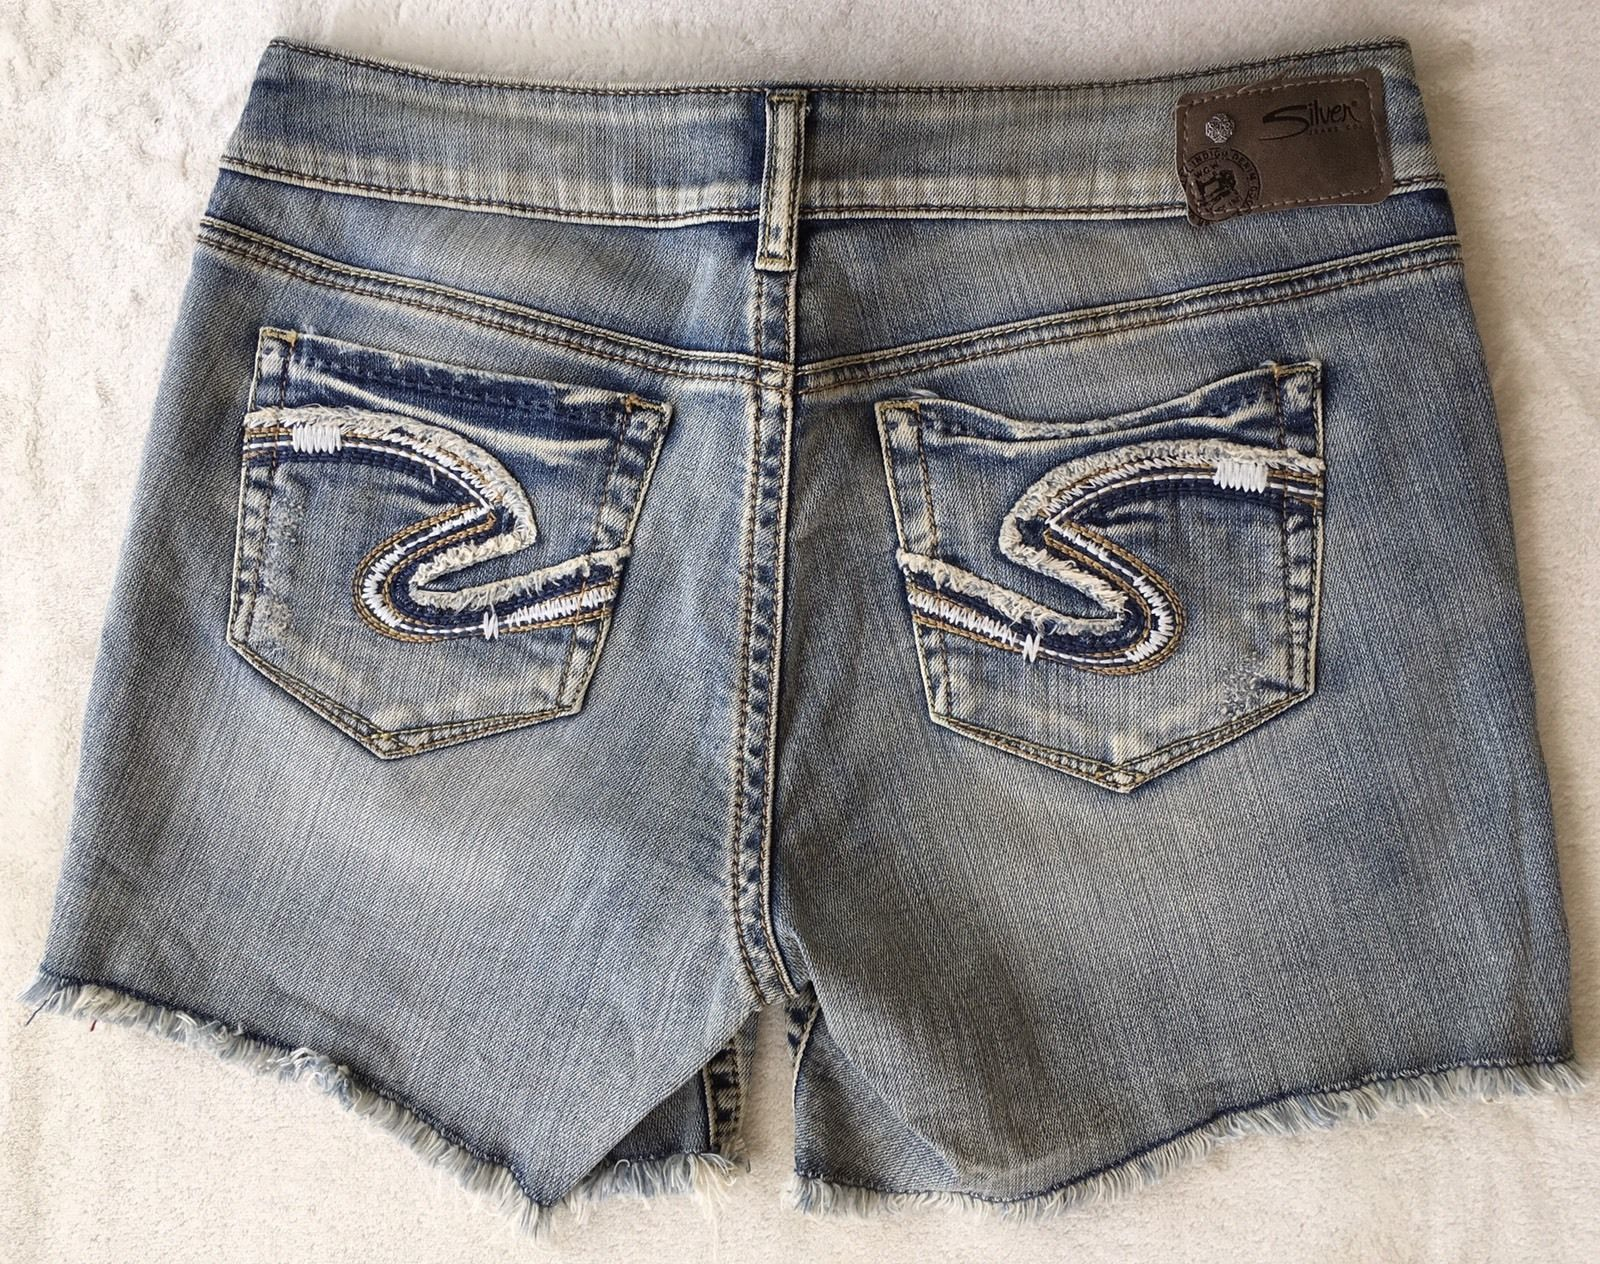 SILVER Jeans Sale Buckle Low November Cut Off Denim Jean Stretch Mid Shorts 28